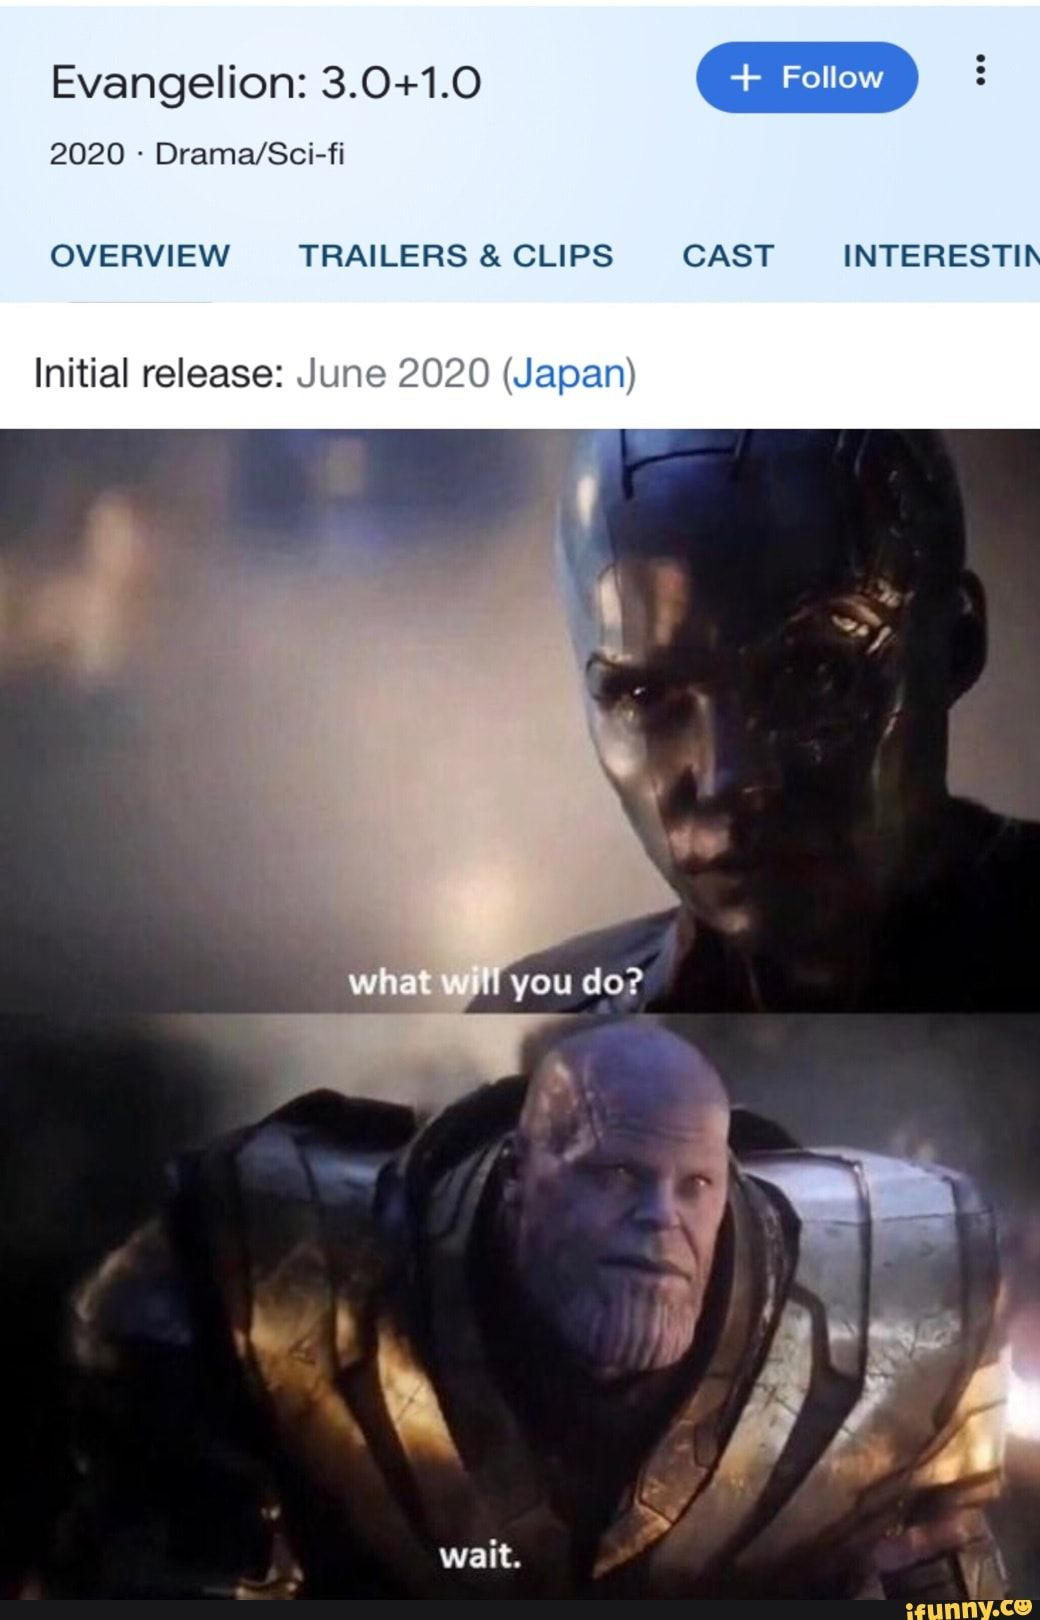 Evangelion 3 0 1 0 Overview Trailers Clips Cast Interesti Initial Release June 2020 Japan Ifunny Memes Seriously Funny Marvel